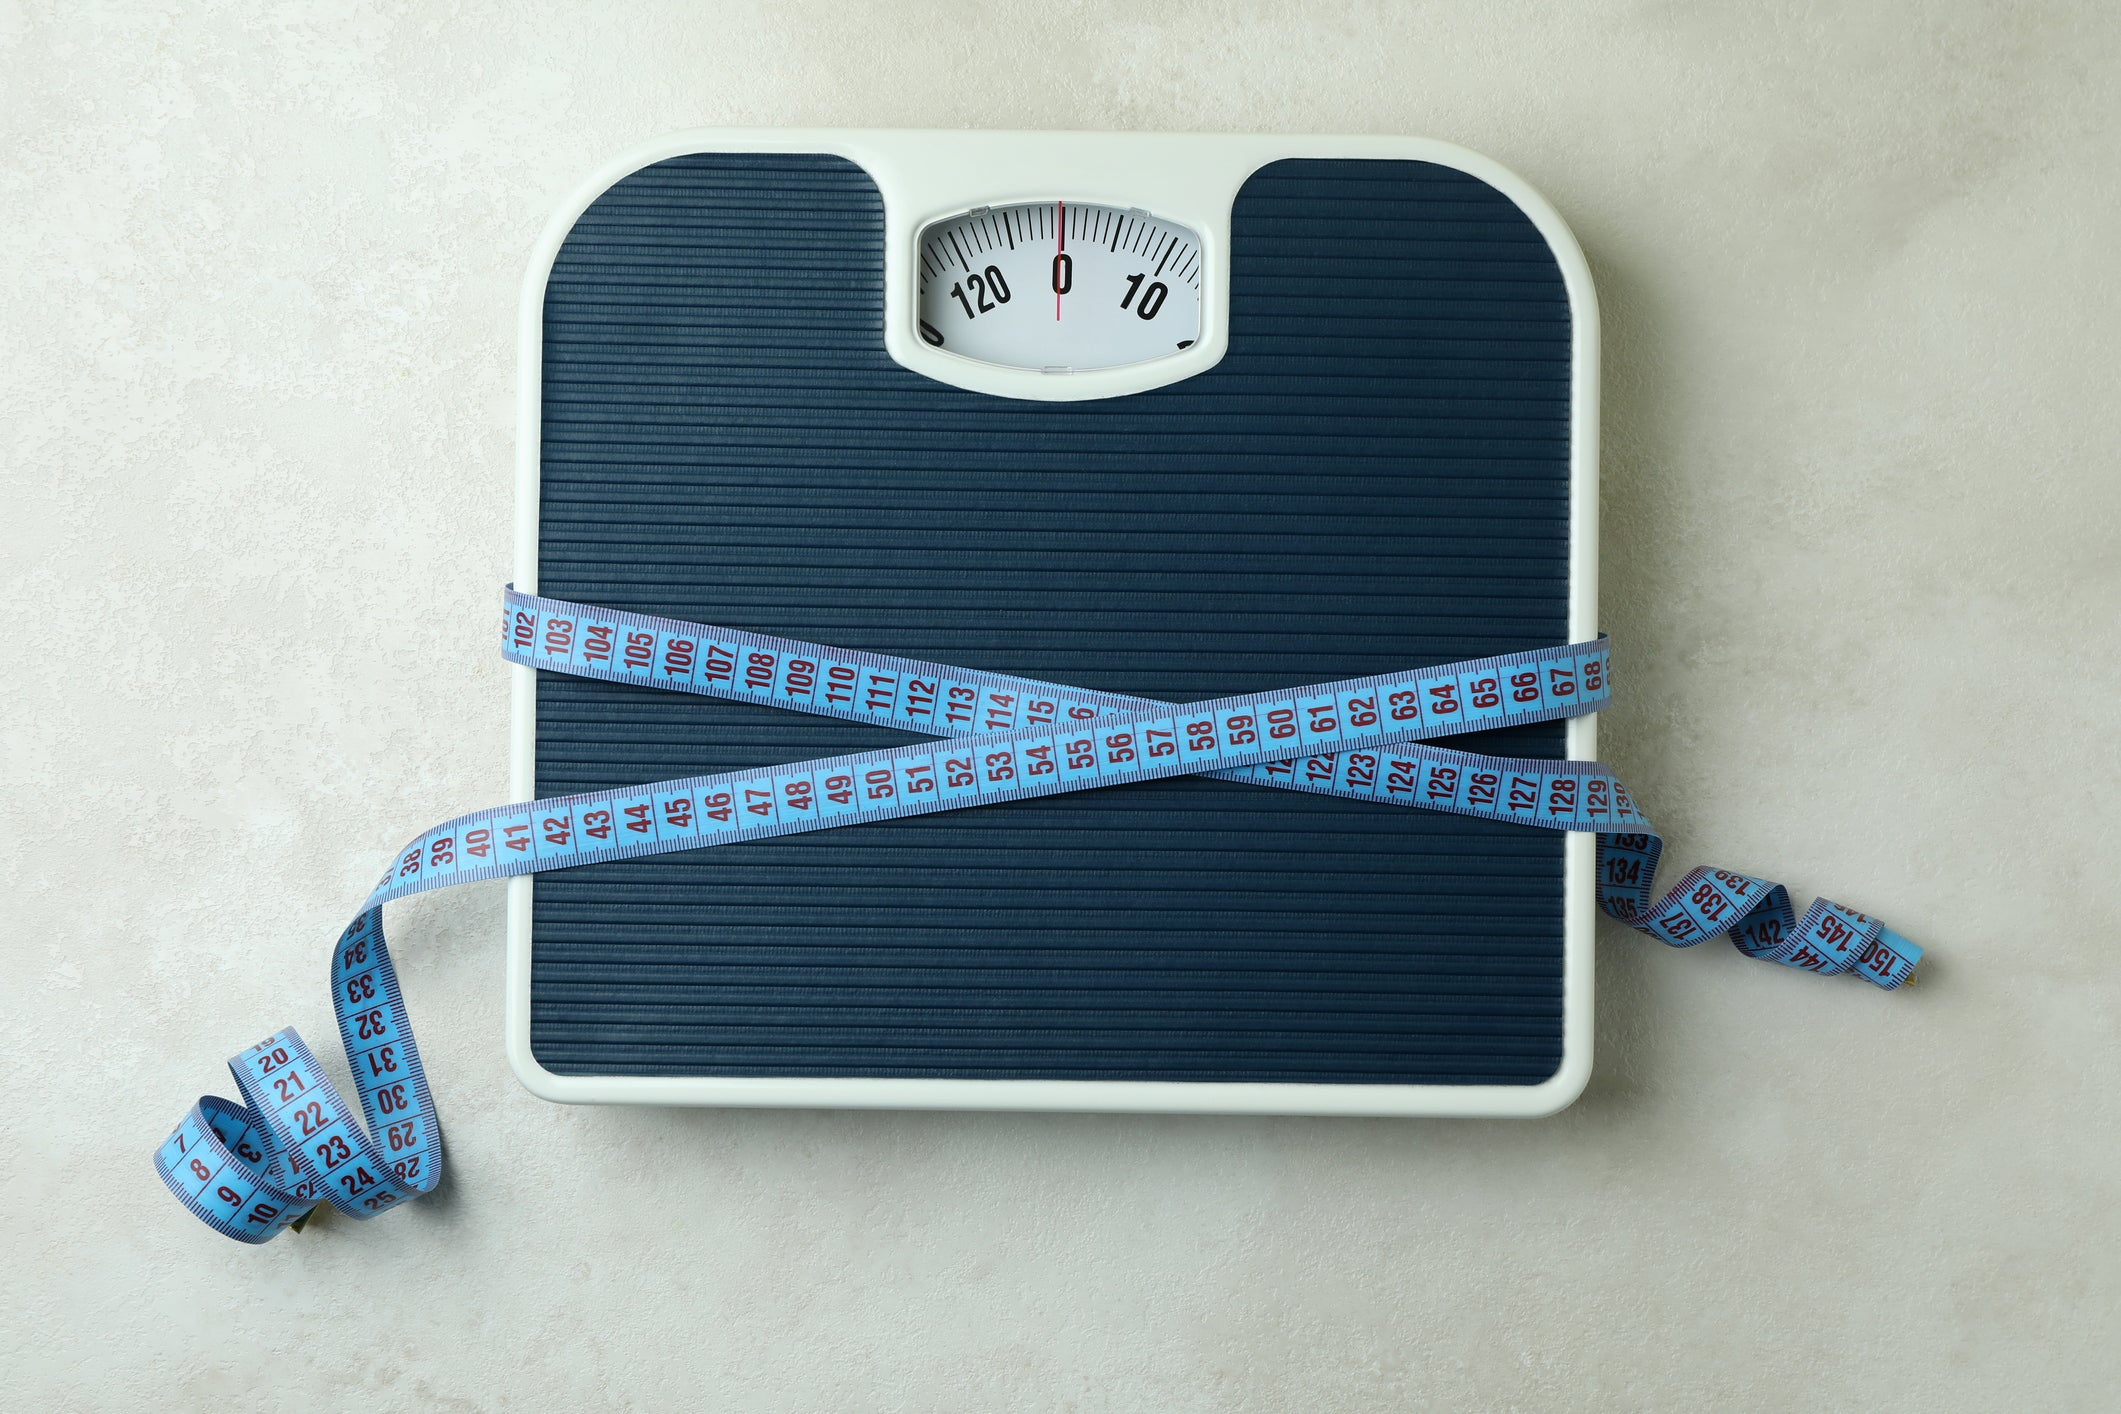 3 Stocks to Buy That Should Get a Boost From Pandemic-Driven Consumer Weight Gain